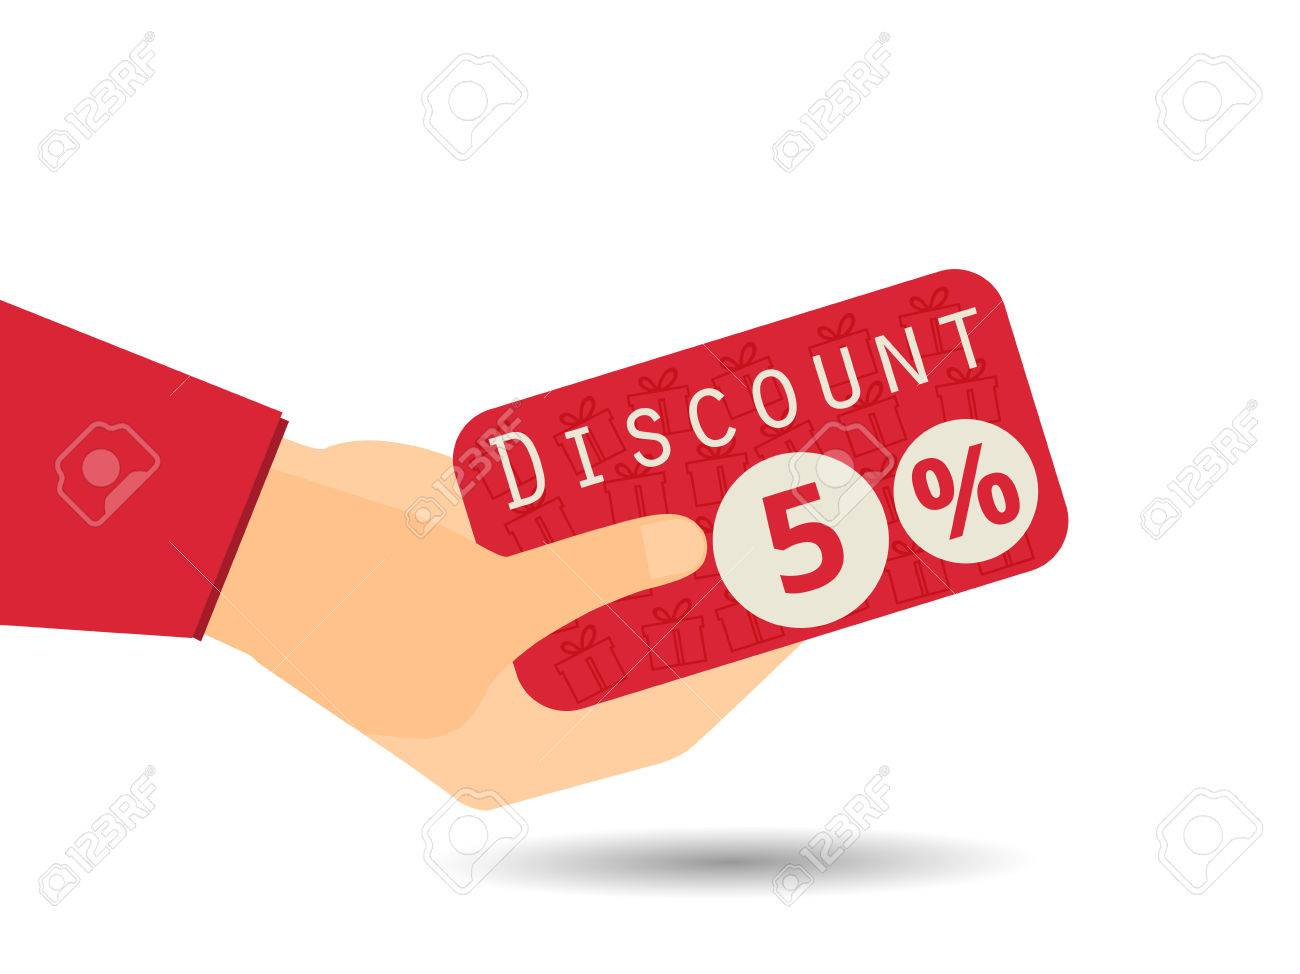 discount coupons in hand percent discount special offer discount coupons in hand 5 percent discount special offer gift boxes in the